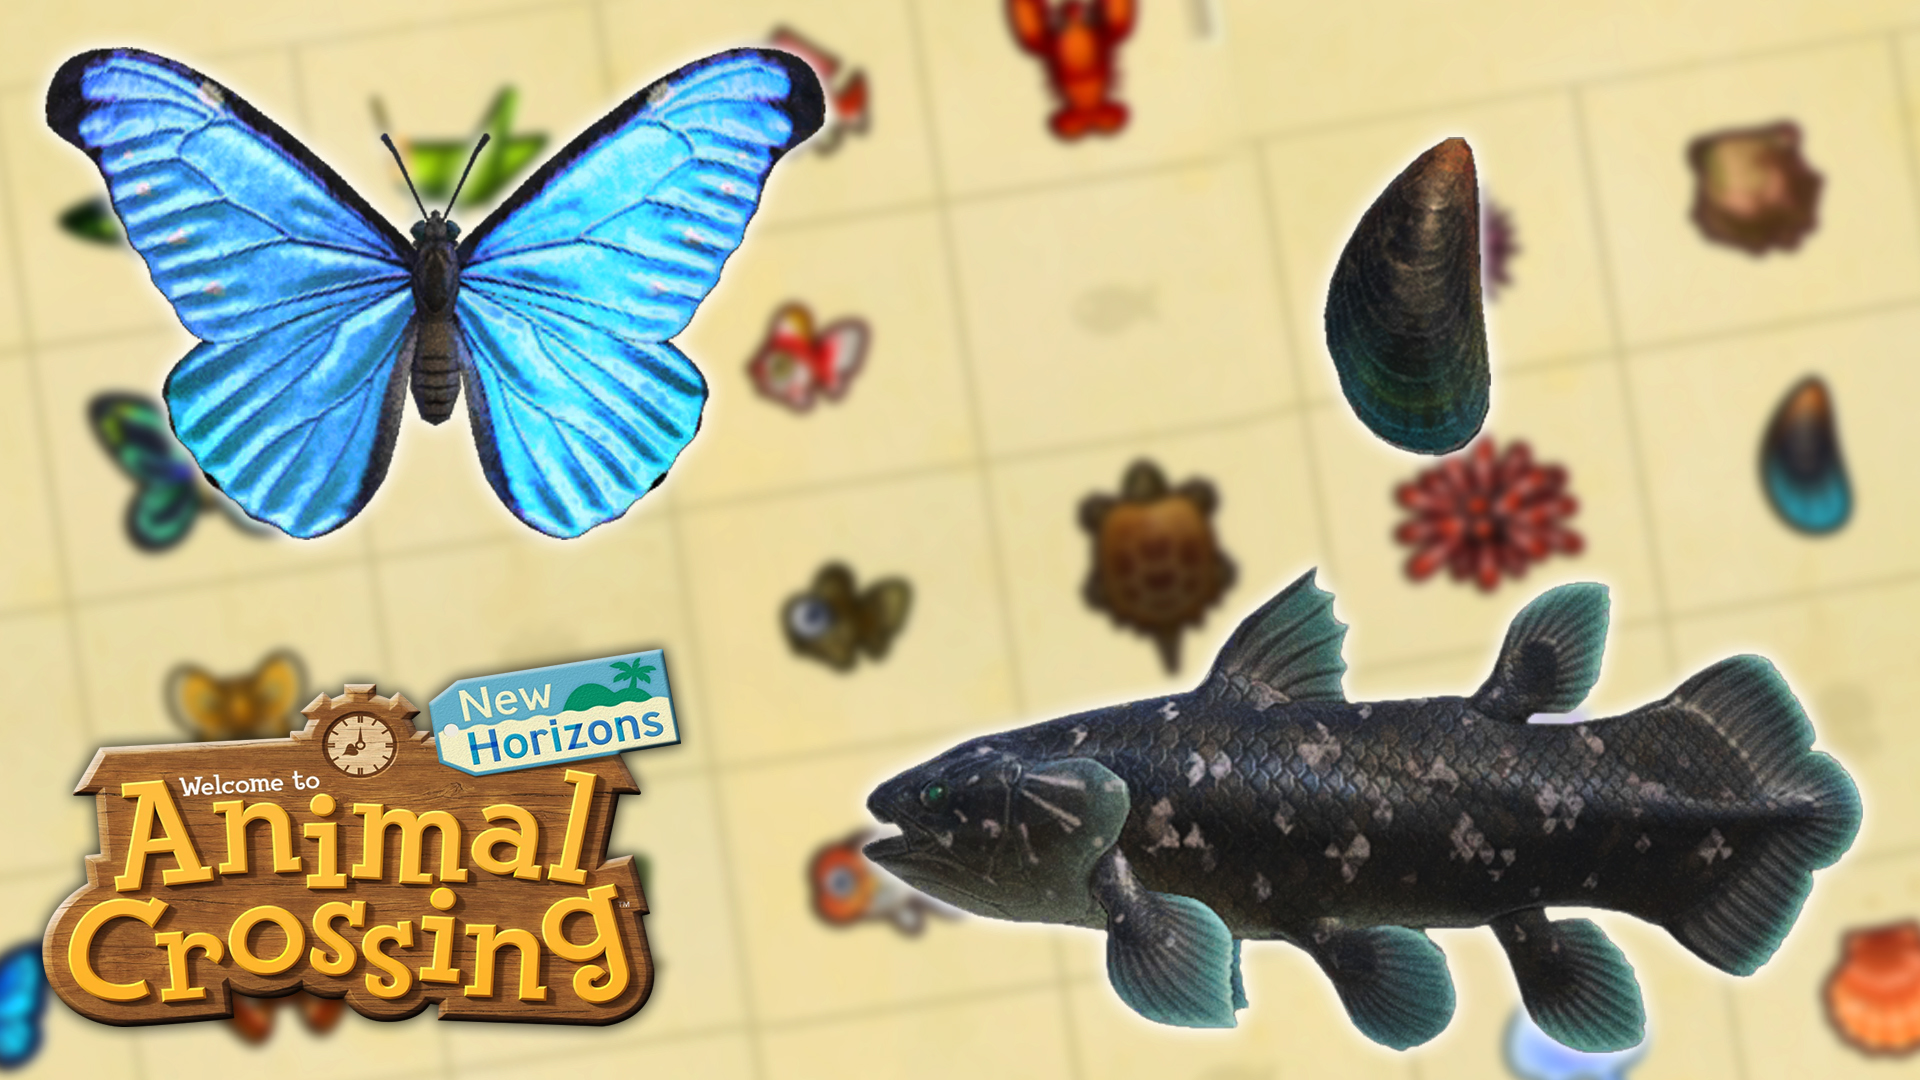 Animal Crossing New Horizons, January Changes: New Insects, Fish, and Sea Creatures, Our Guide